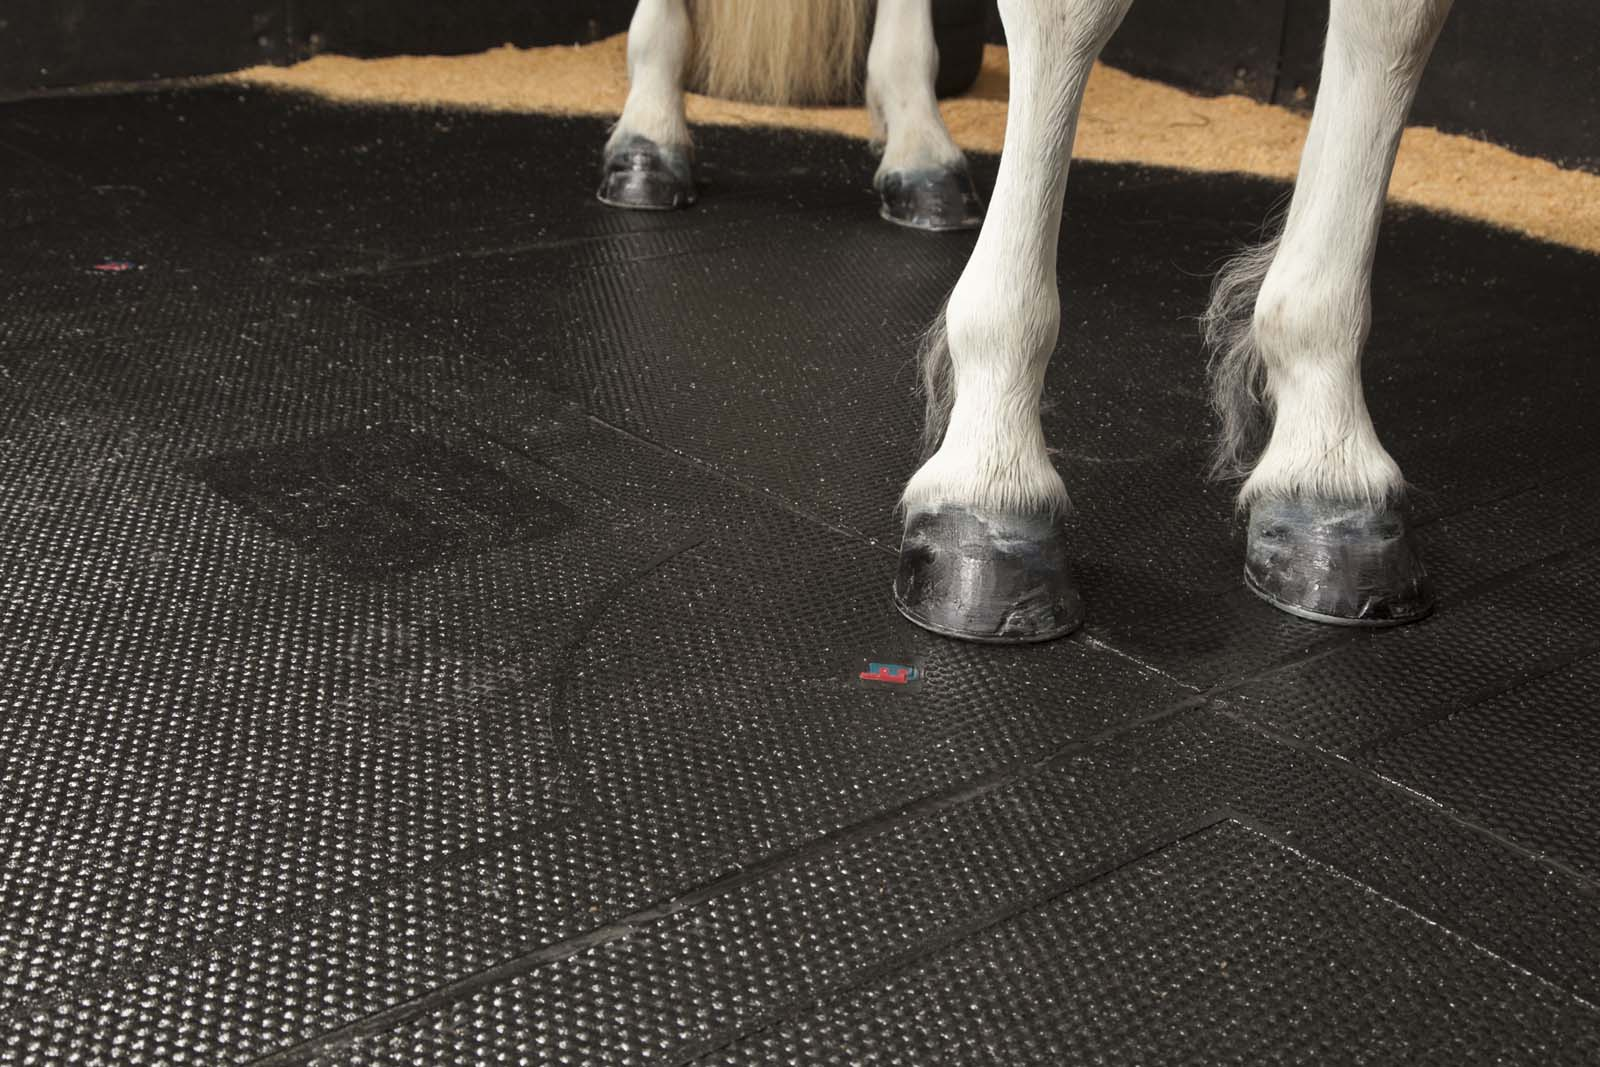 Stable Comfort & Safety 4 stable delux from easyfix equine 1